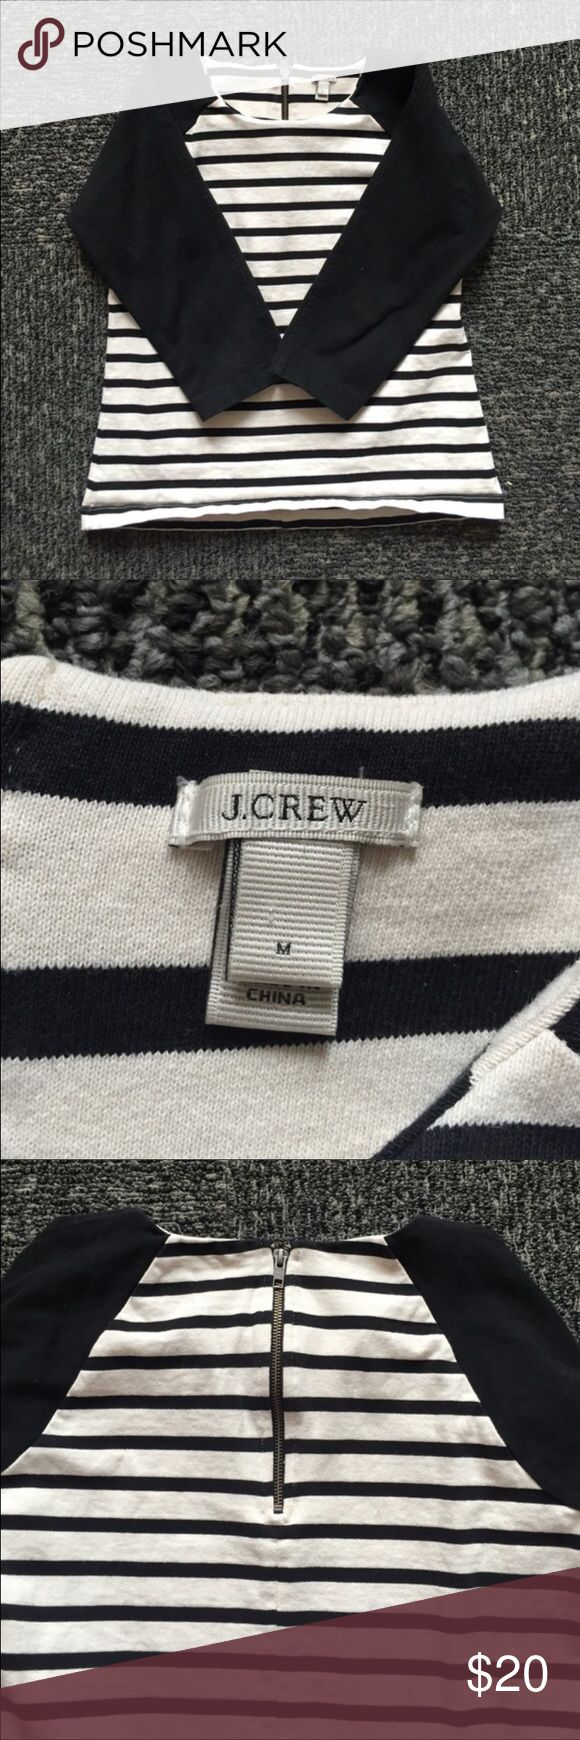 J.Crew 3/4 length boat neck top Brand new condition! Size medium but fits more like a Small. NOT FACTORY thick material. Lovely top!!! J. Crew Tops